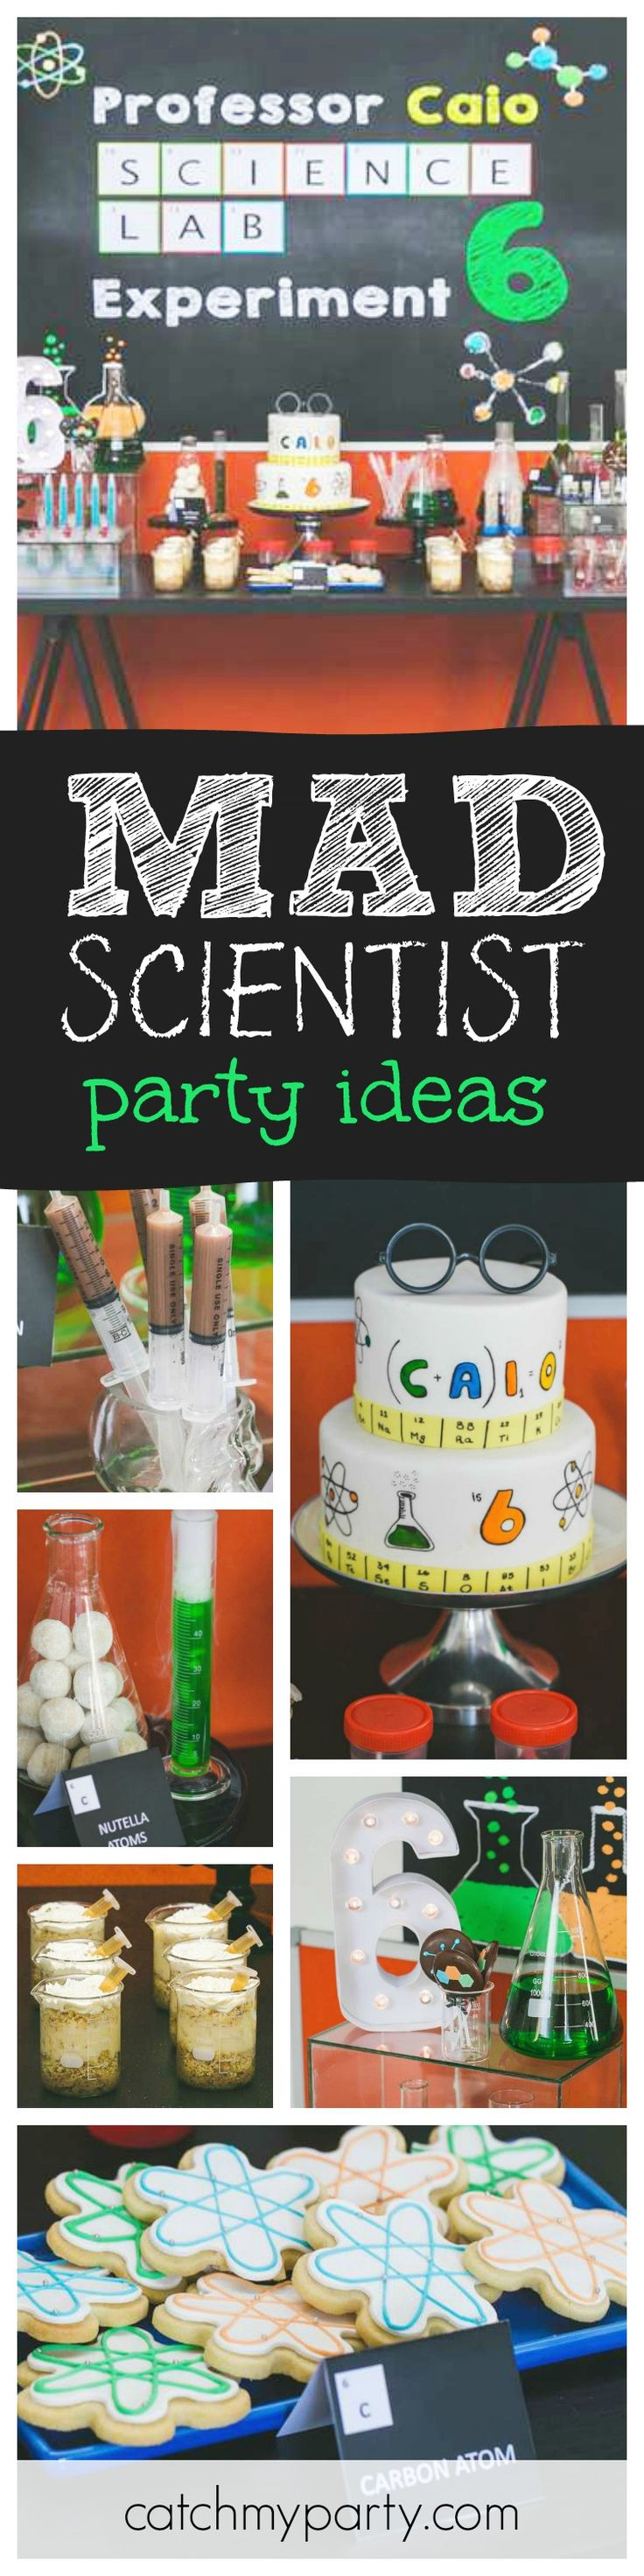 Check out the awesome science lab! This mad scientist party is a blast. The science inspired desserts are so much fun !